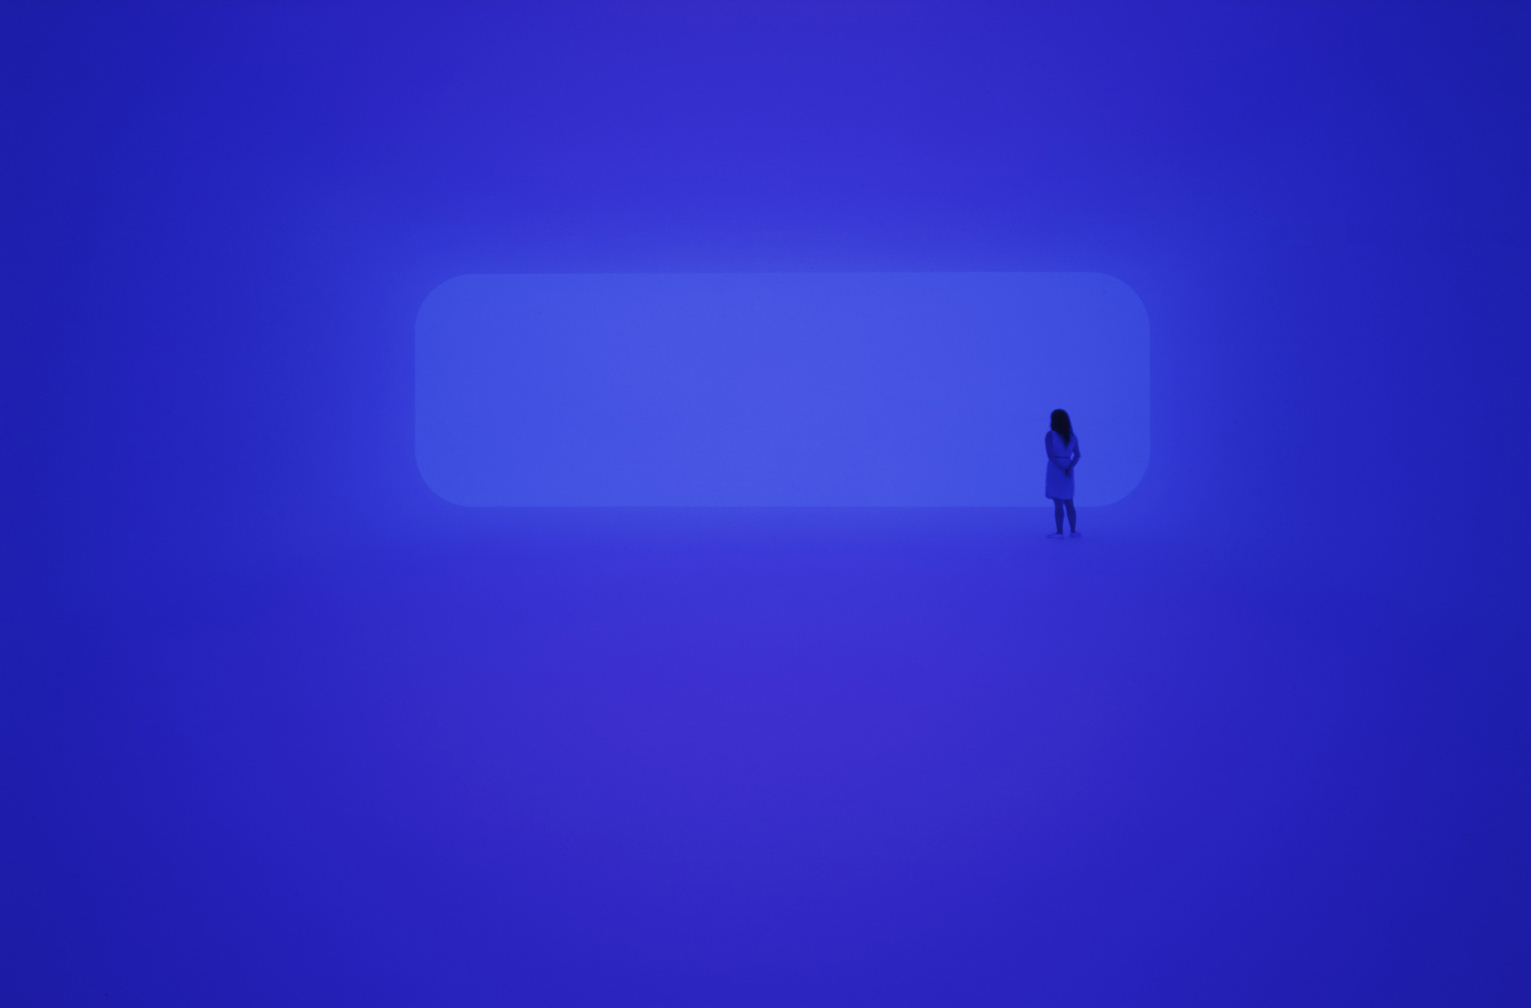 james-turrell-breathing-light-2013